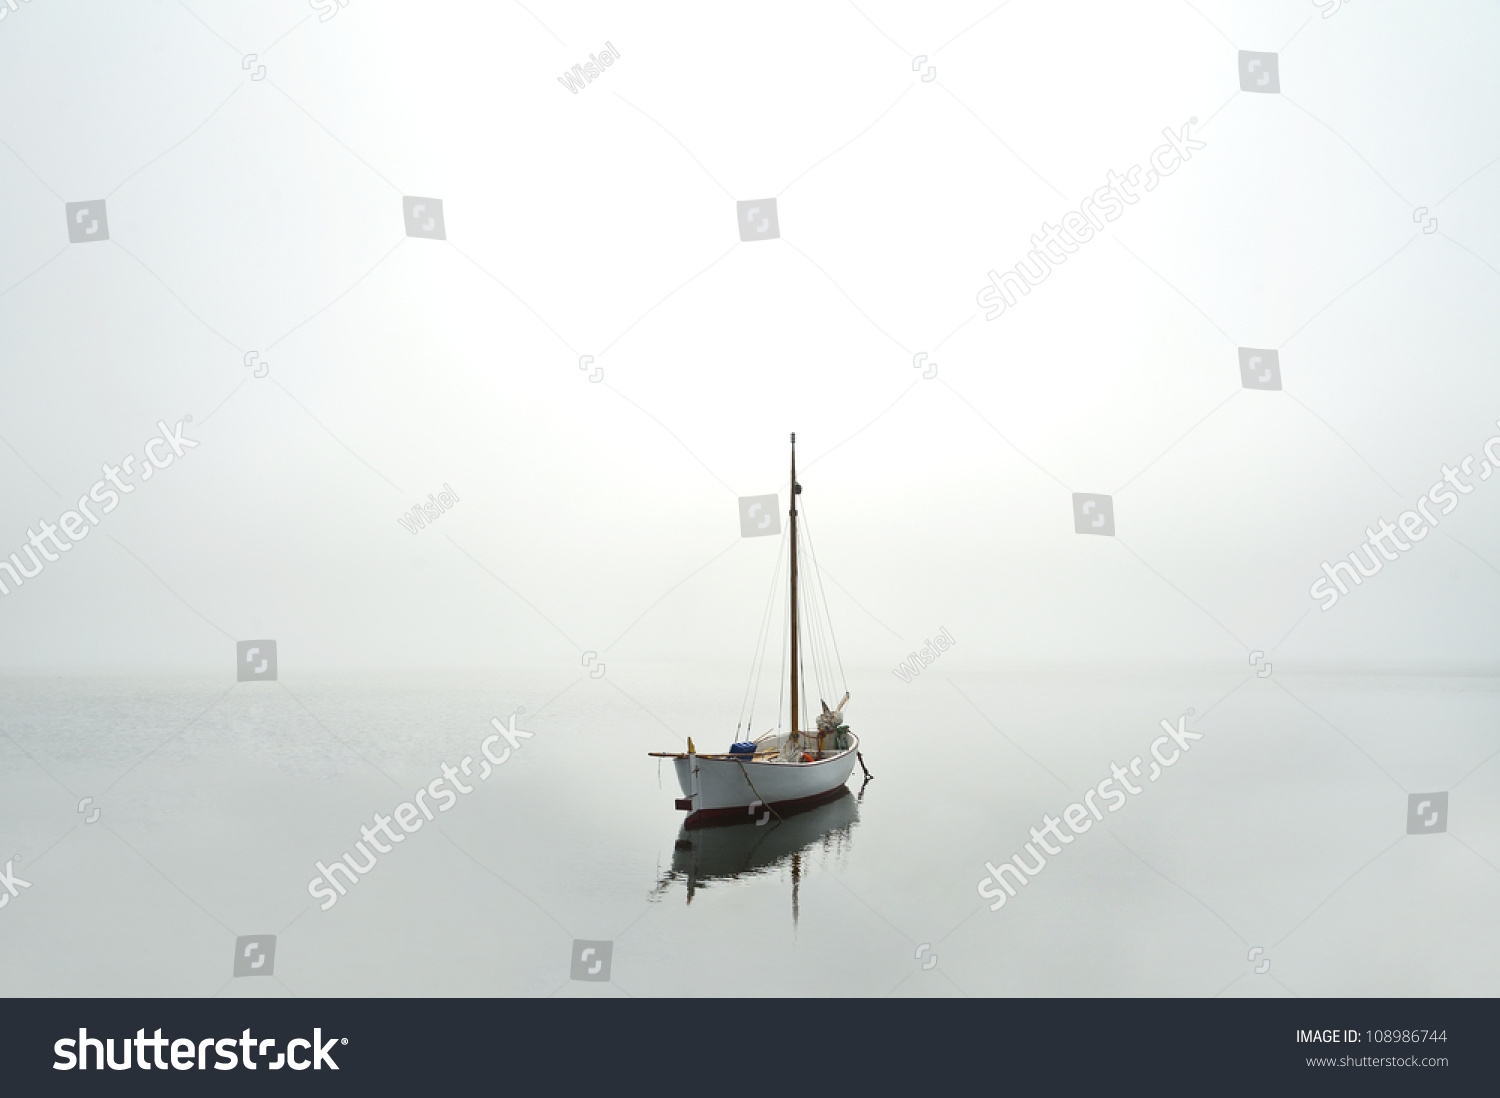 Boat on water near the coast #108986744